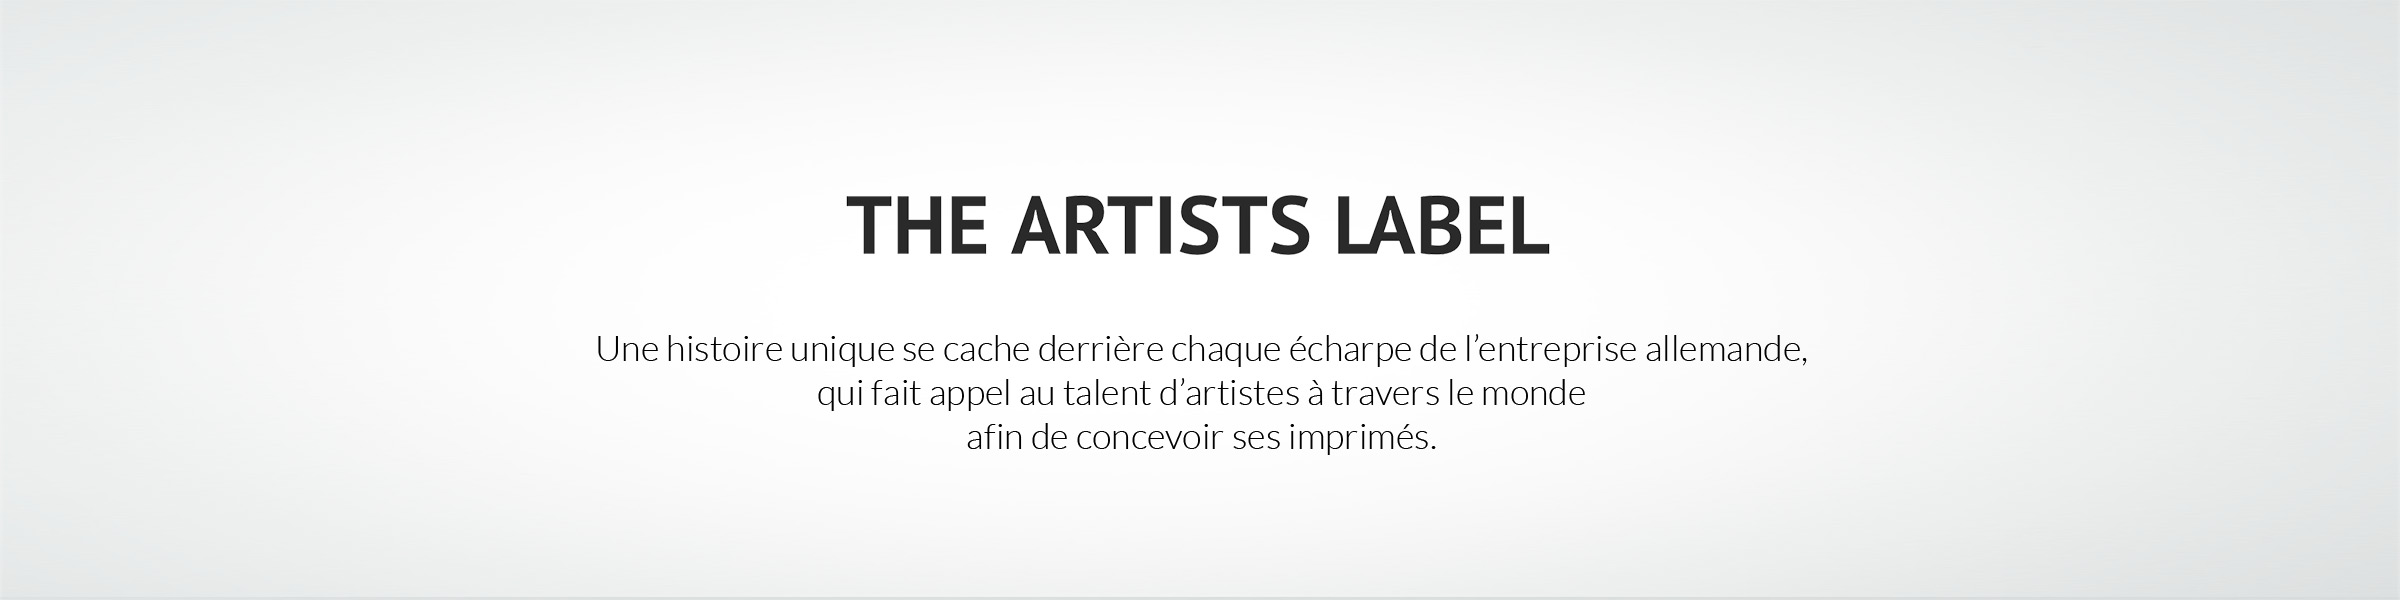 032355 The Artists Label